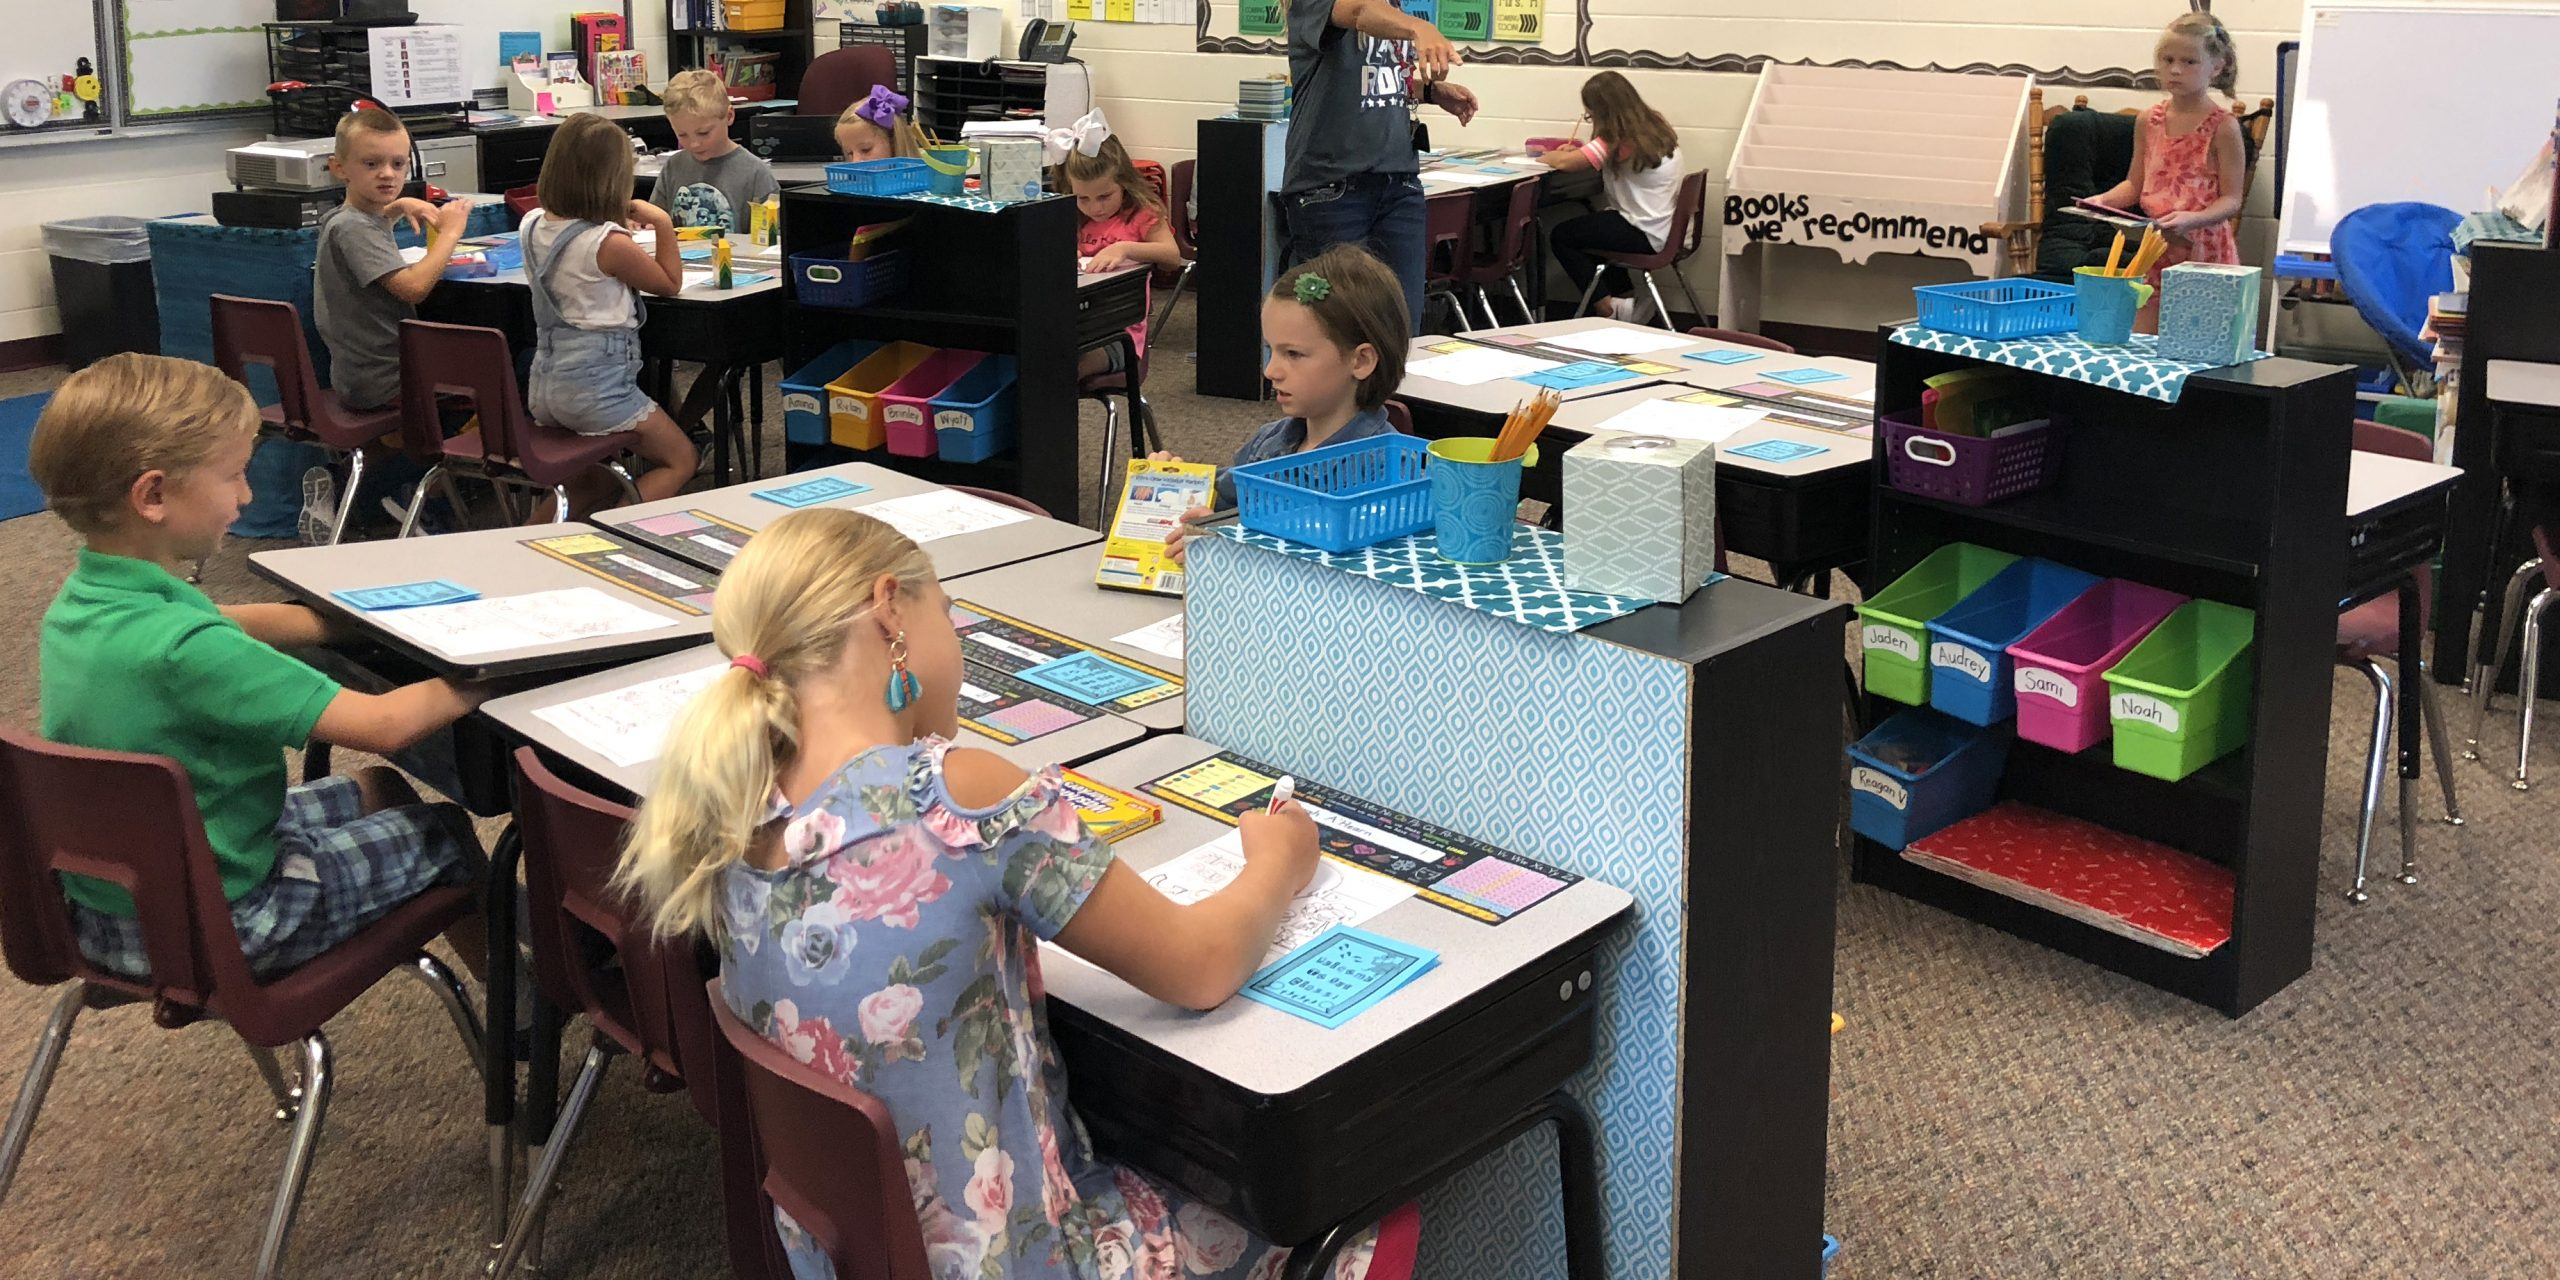 Elementary students working at their desks